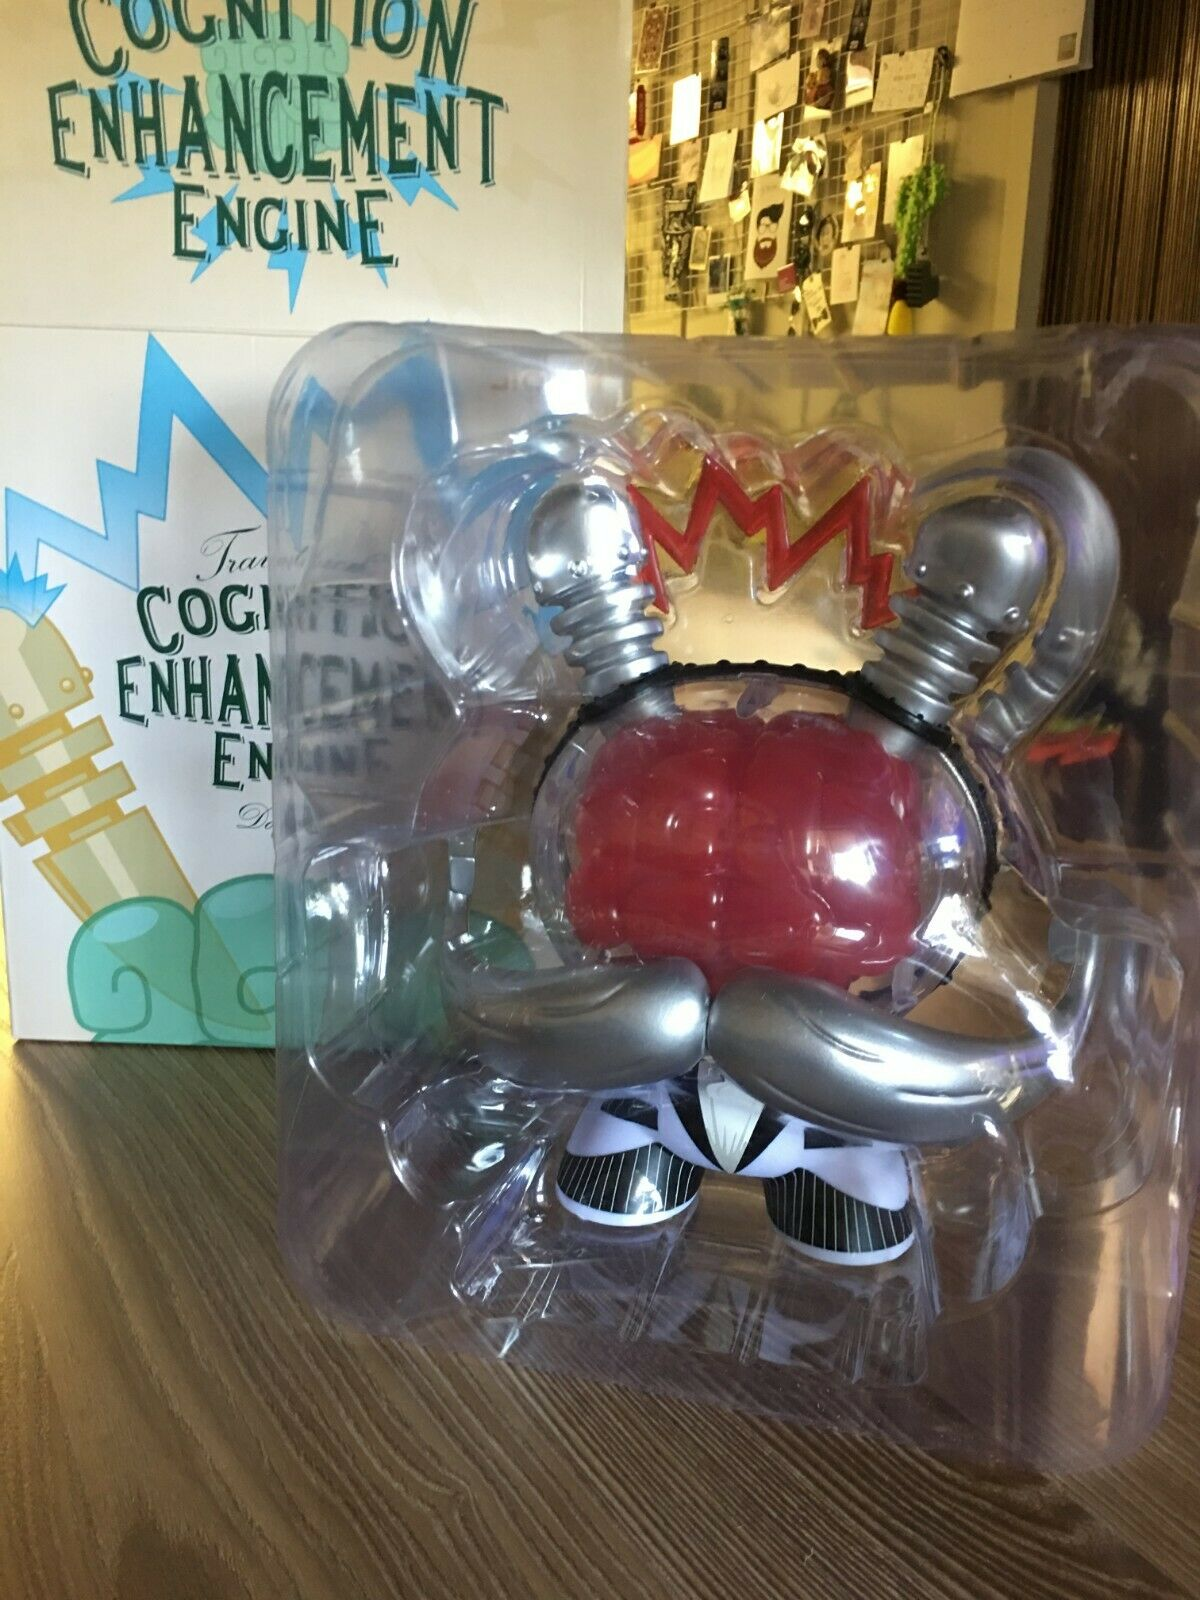 Kidrobot 8 Inch Rare Cognition enhancement Dunny - - - Red 5ac788